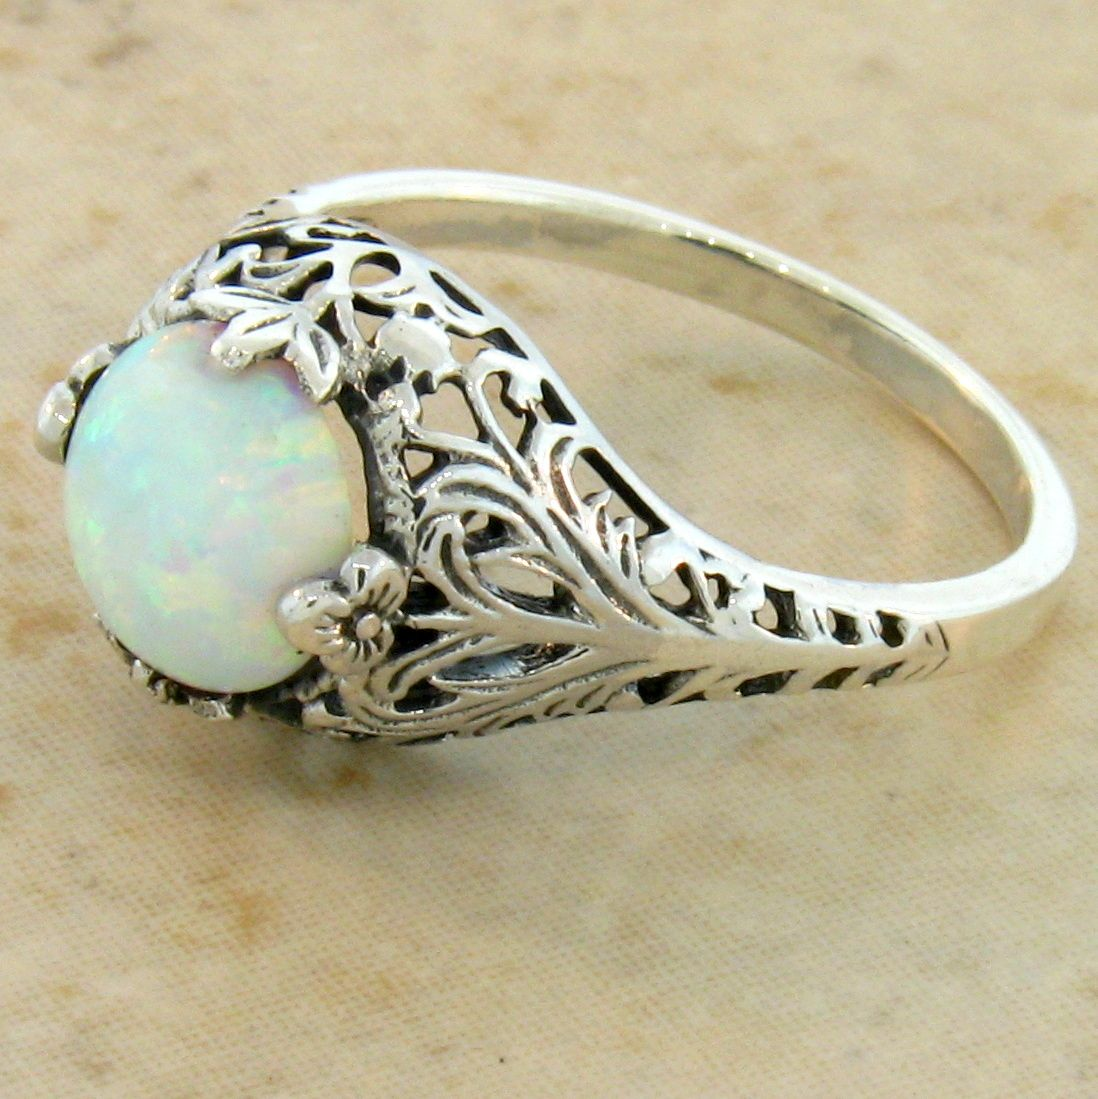 WHITE OPAL ANTIQUE FILIGREE DESIGN 925 STERLING SILVER RING SIZE 9 ...